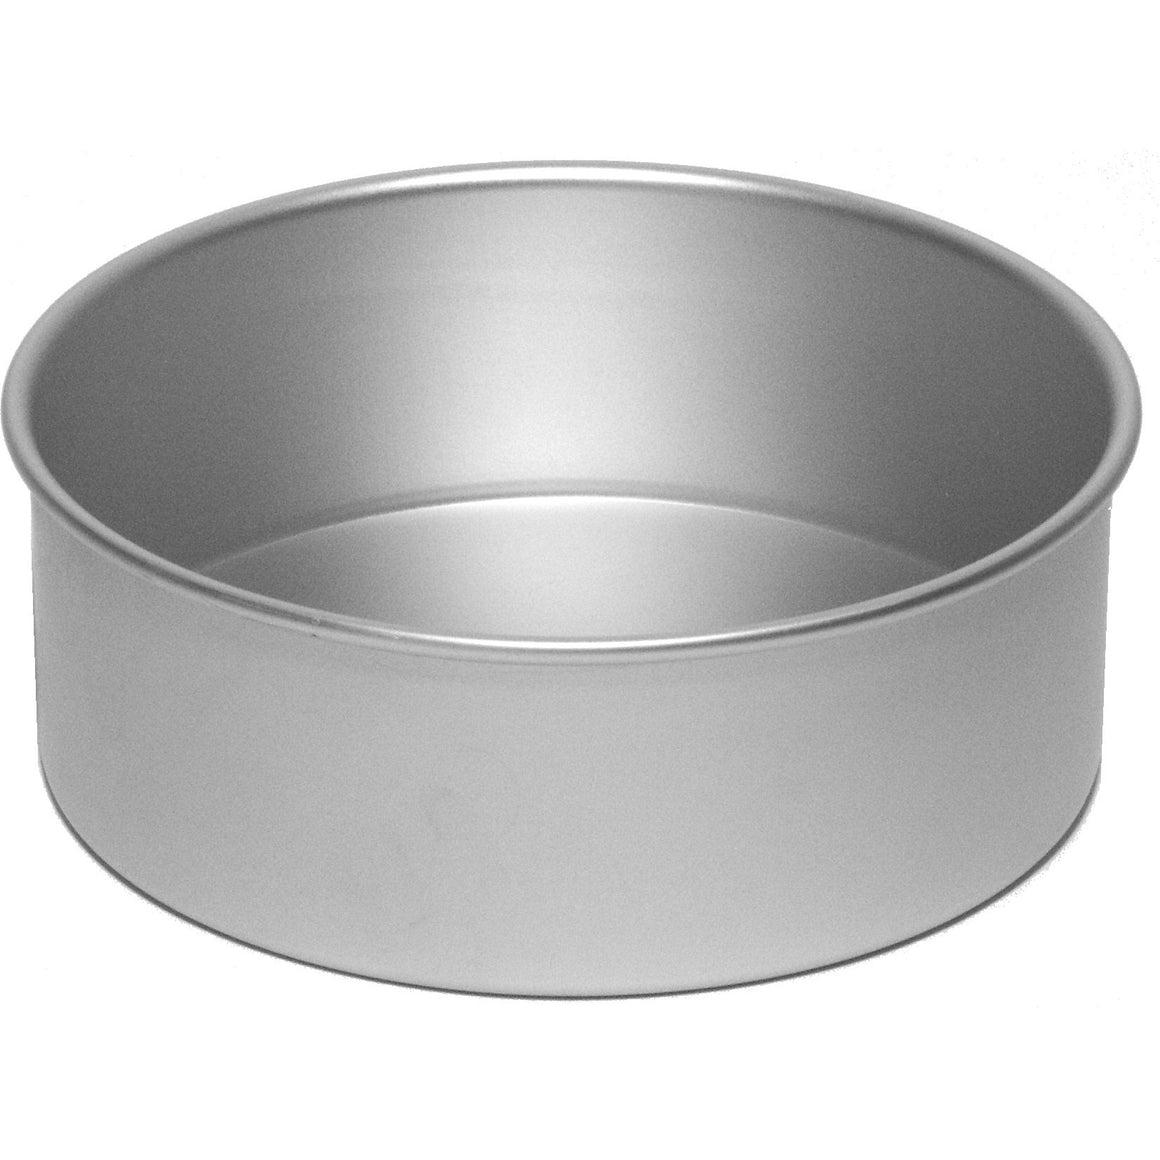 "Silverwood 7"" Deep Round Solid Base Cake Tin"